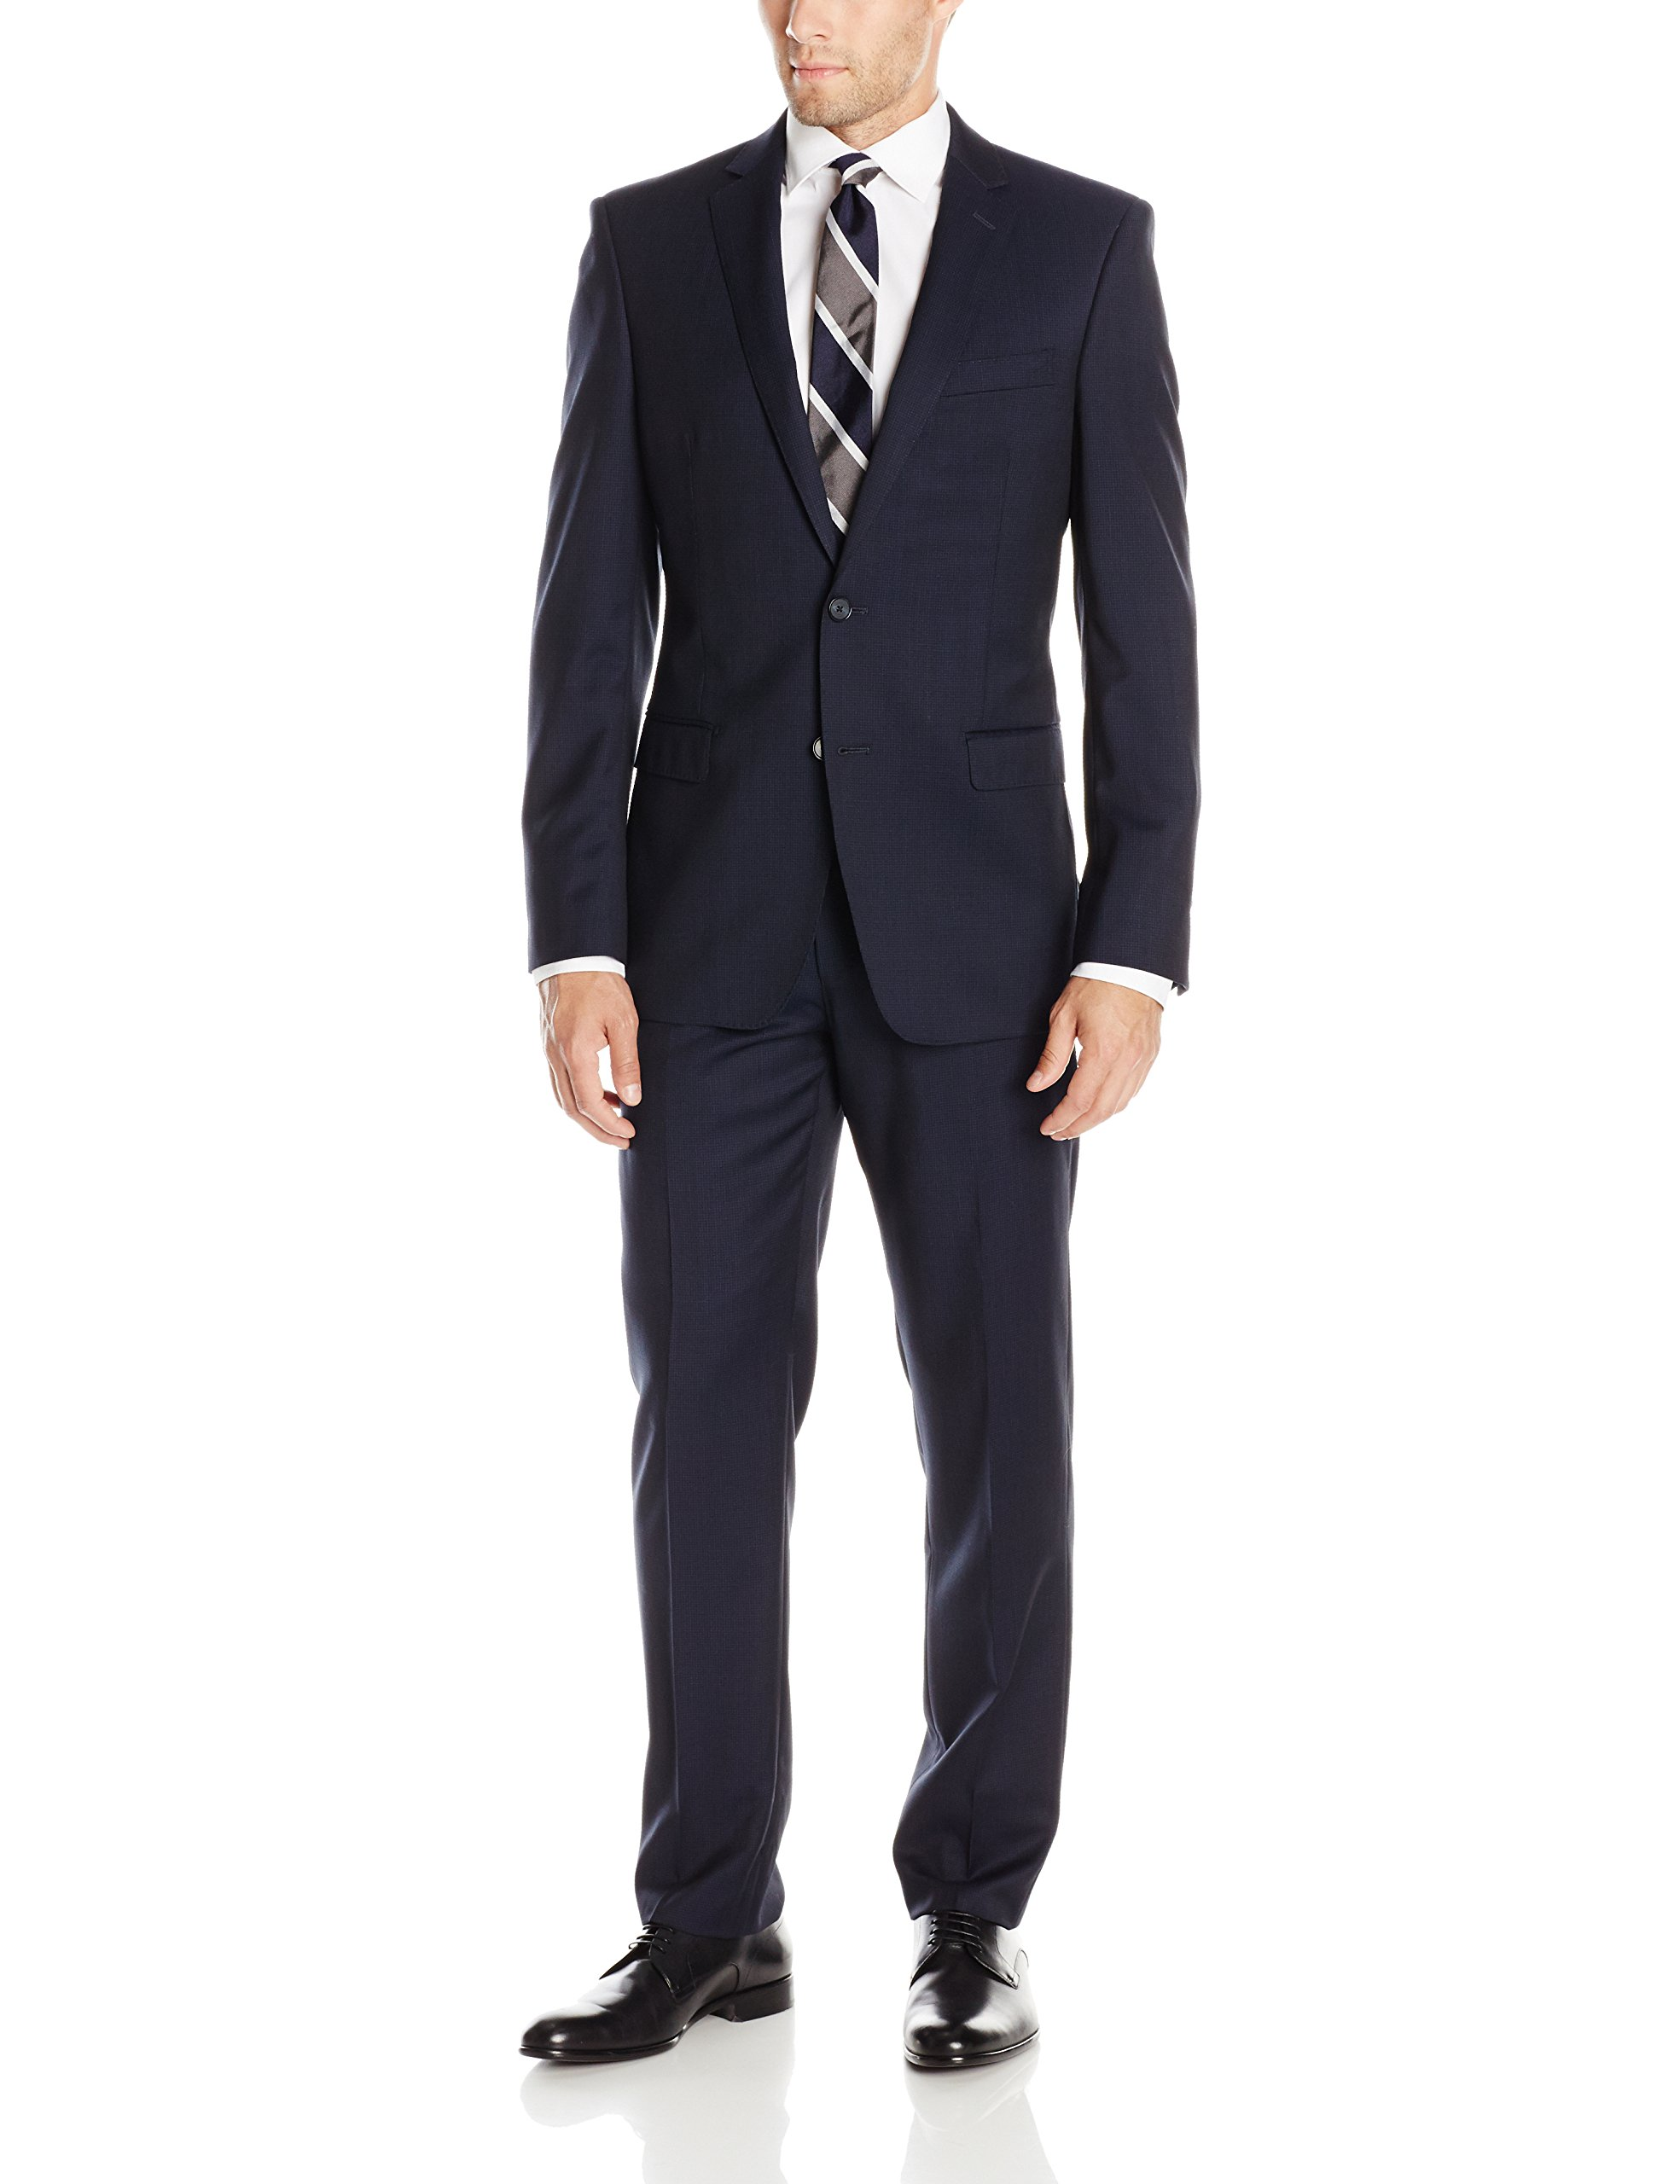 DKNY Men's Dekalb Mini Check 2 Button Slim Fit Suit, Navy, 42/Regular by DKNY